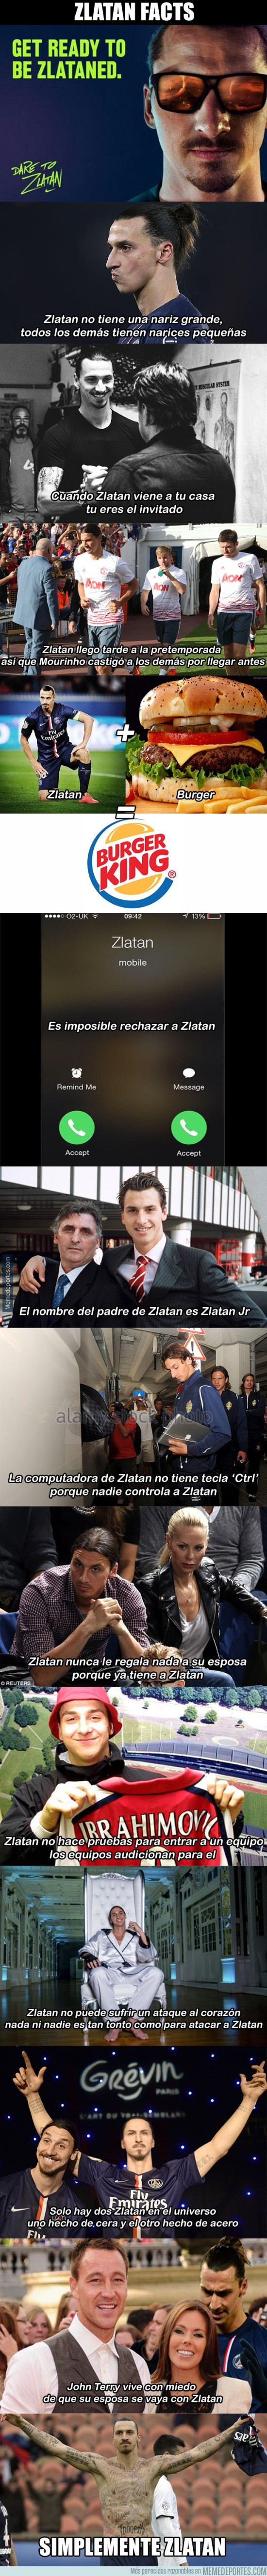 910452 - Zlatan Facts. Simplemente